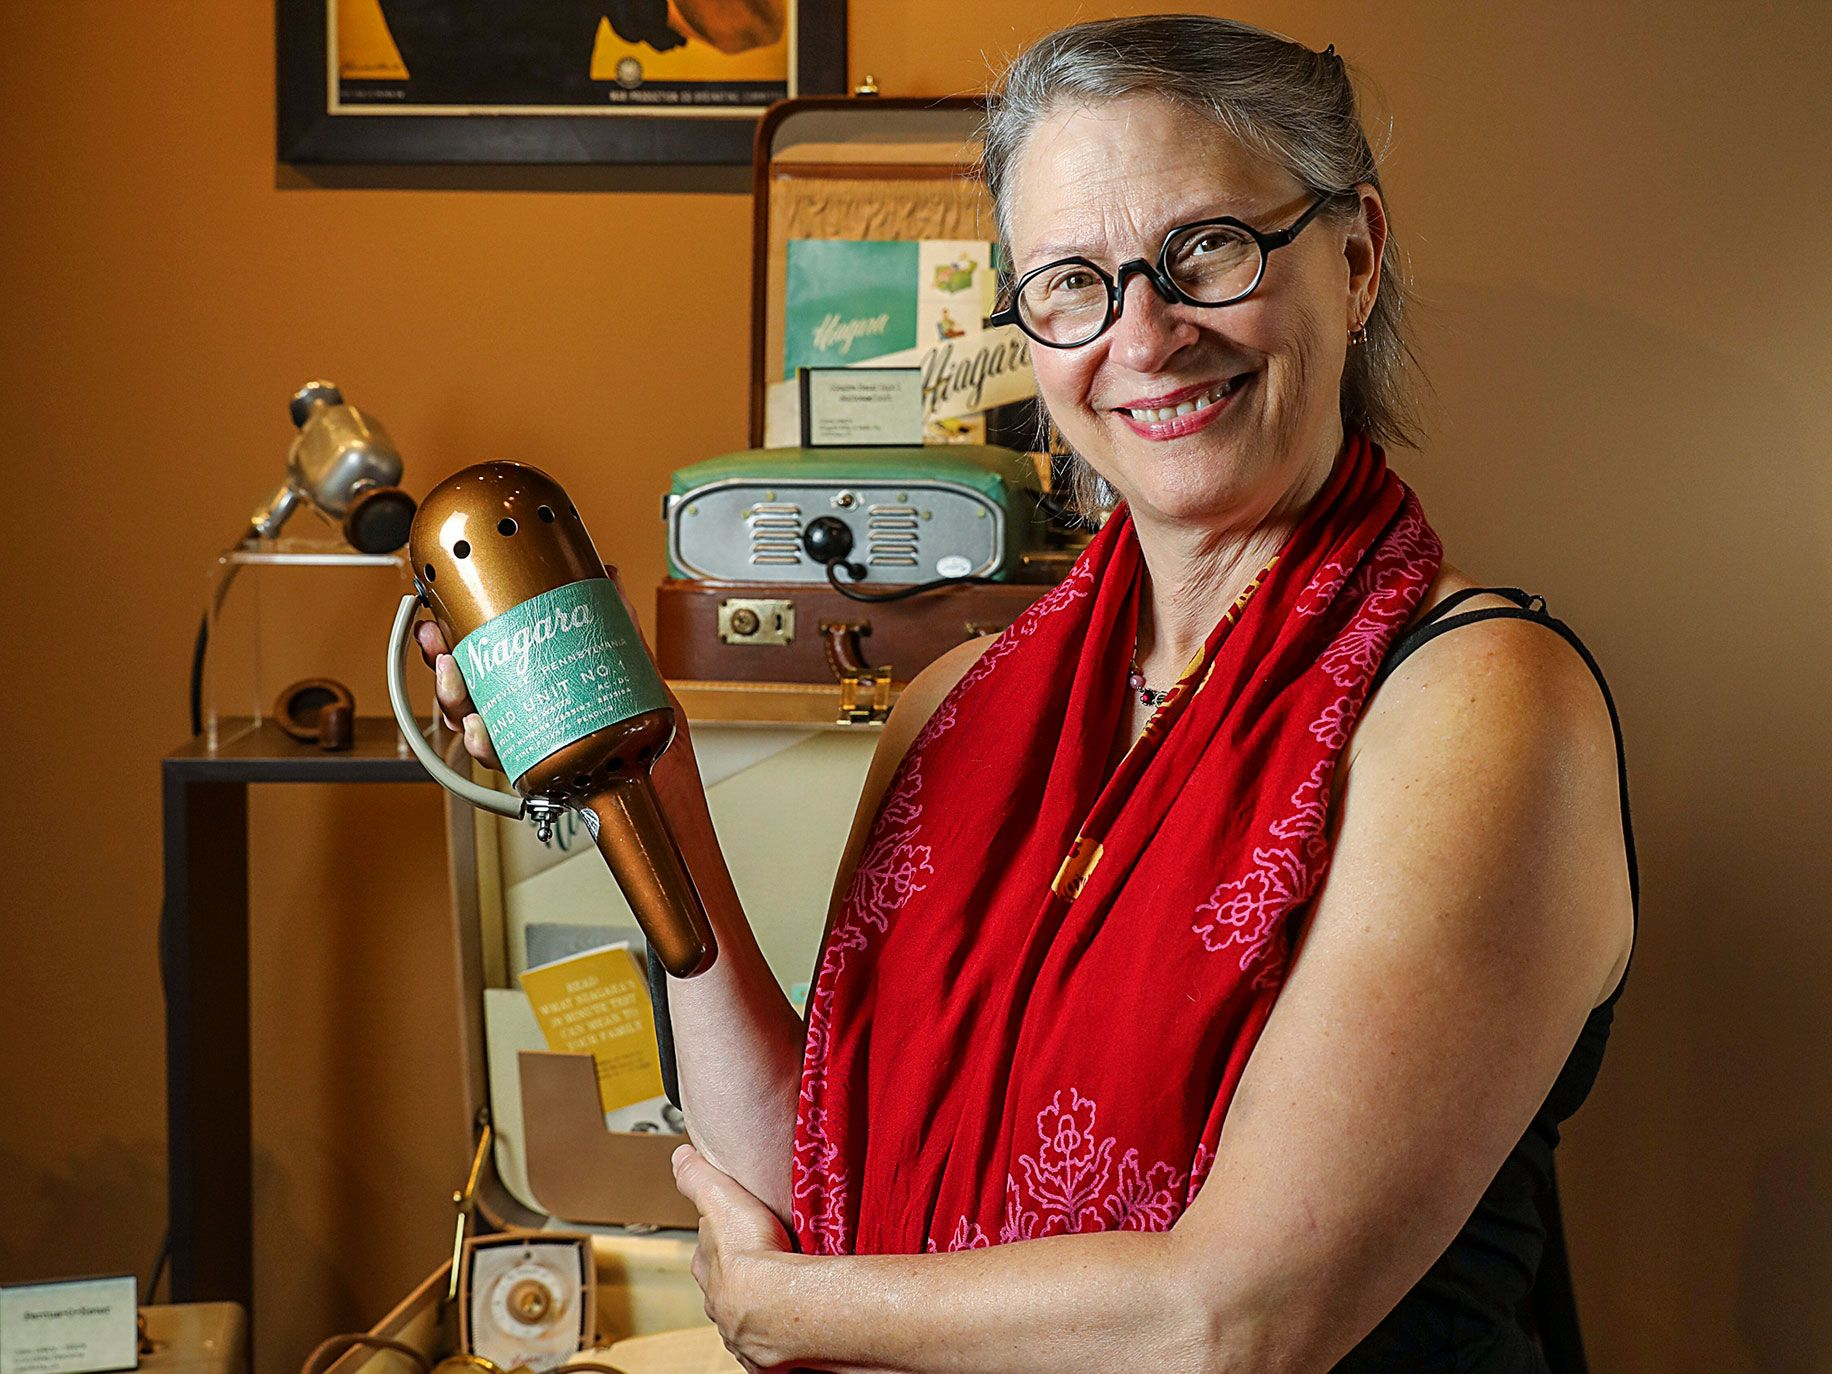 Carol Queen, the staff sexologist at Good Vibrations, holds a 1940s-era Niagara vibrator, part of the store's extensive collection of antique sex toys.